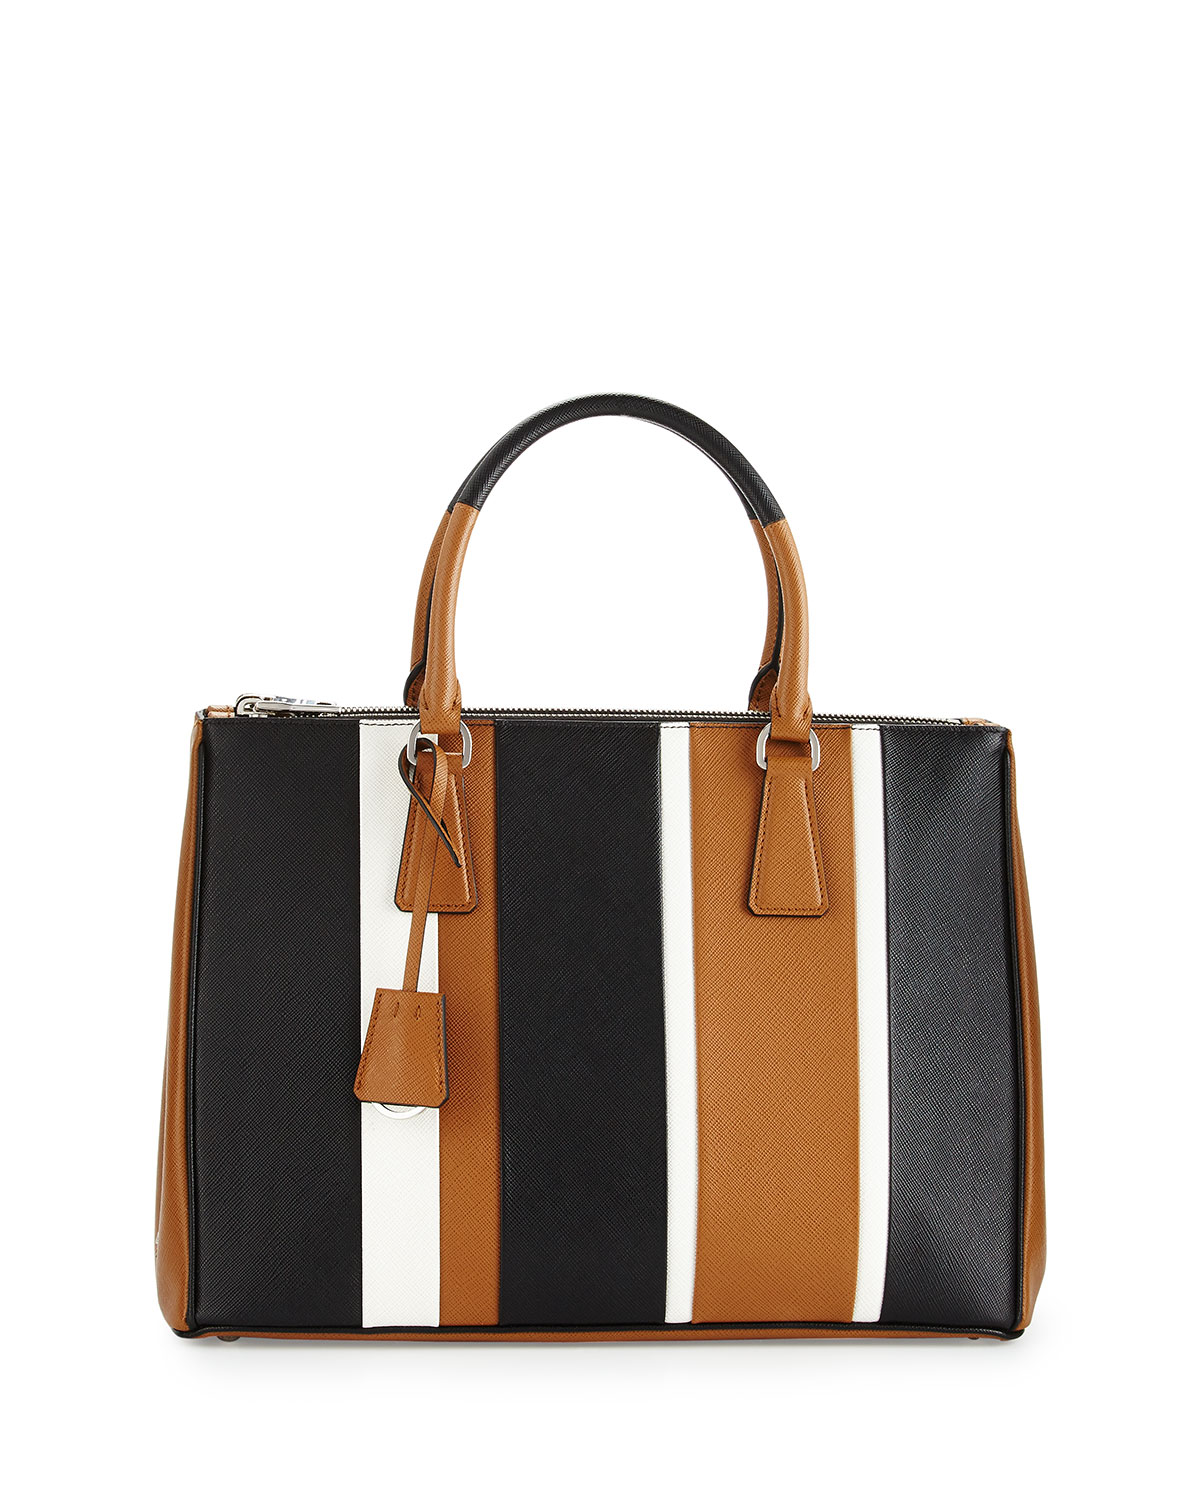 5d8b2635f349 Prada Saffiano Baiadera Striped Galleria Tote Bag